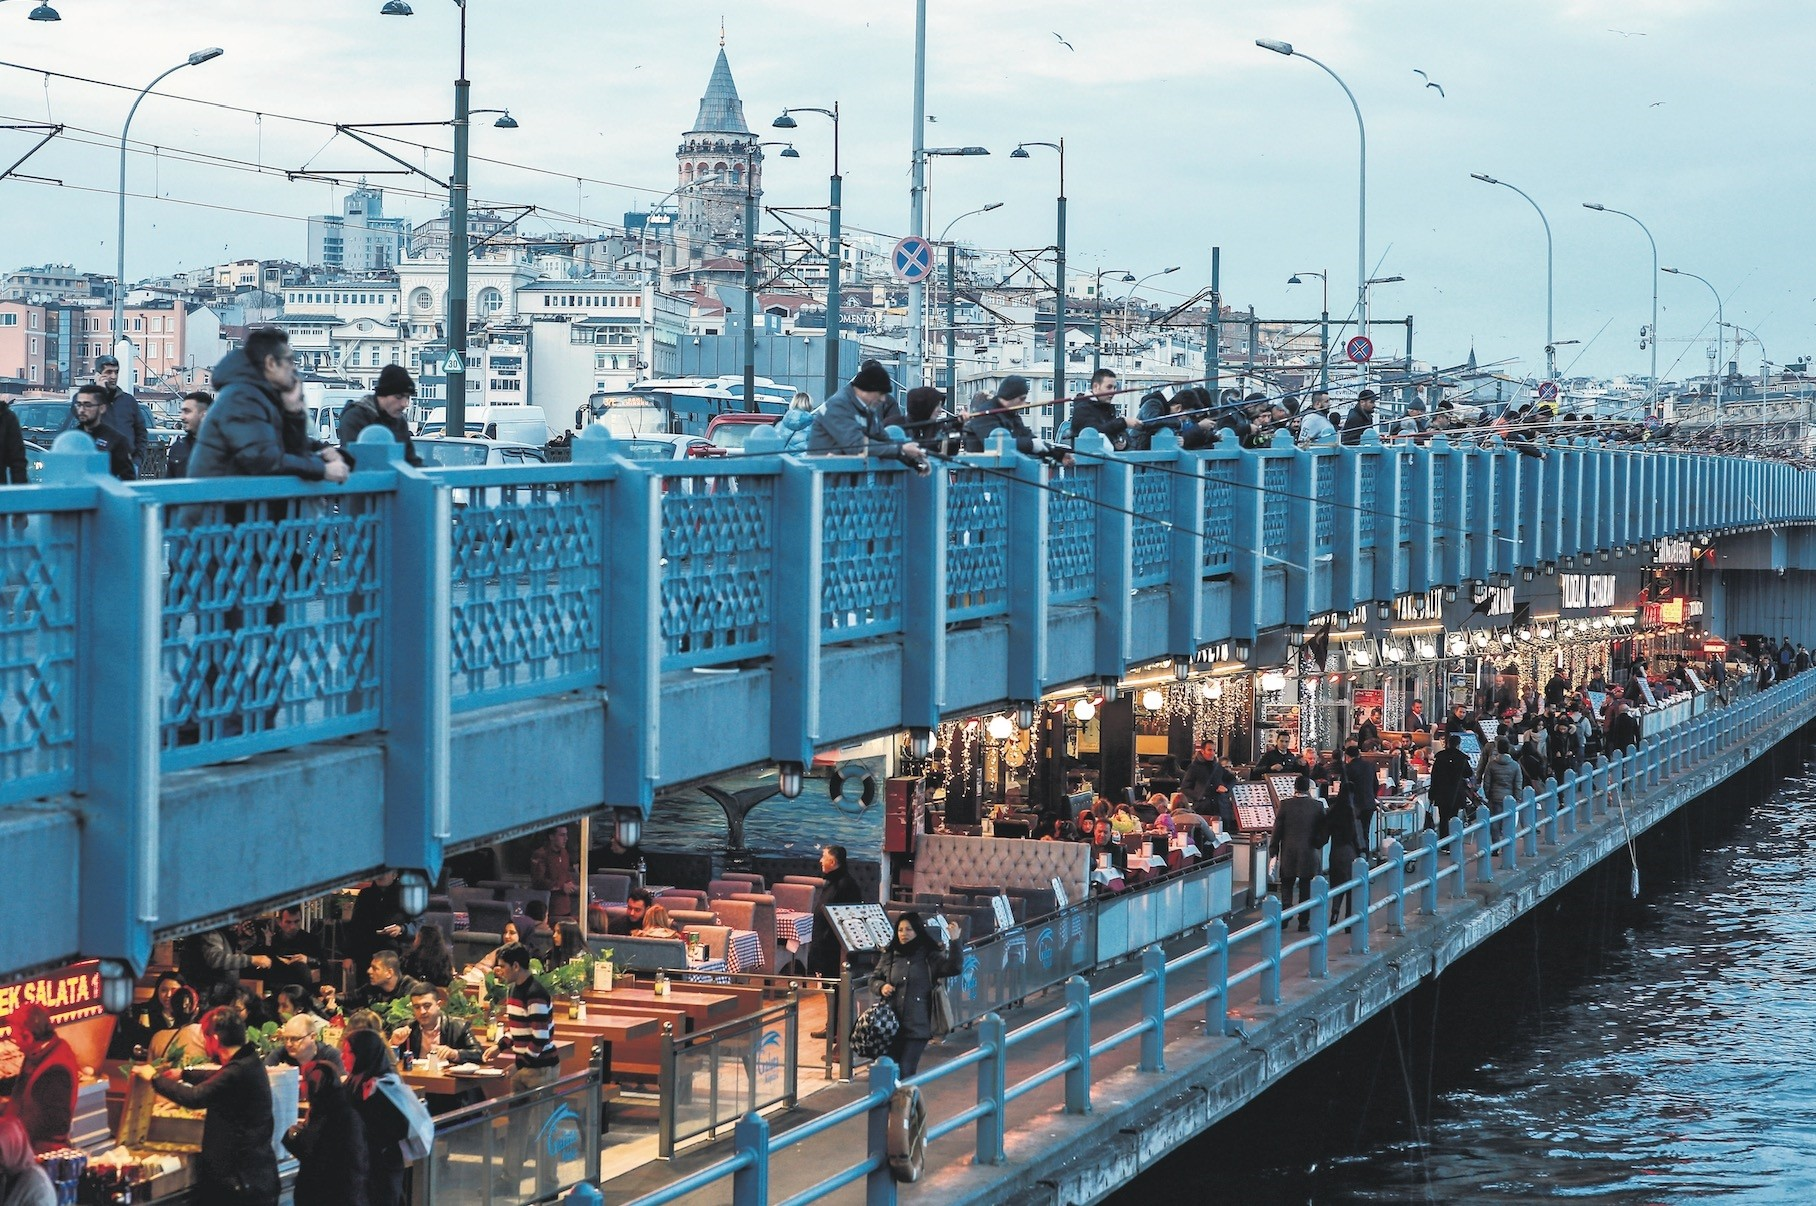 People on the Galata Bridge over Istanbulu2019s Golden Horn. The city is the most crowded place in Turkey and has a population of over 14 million people.